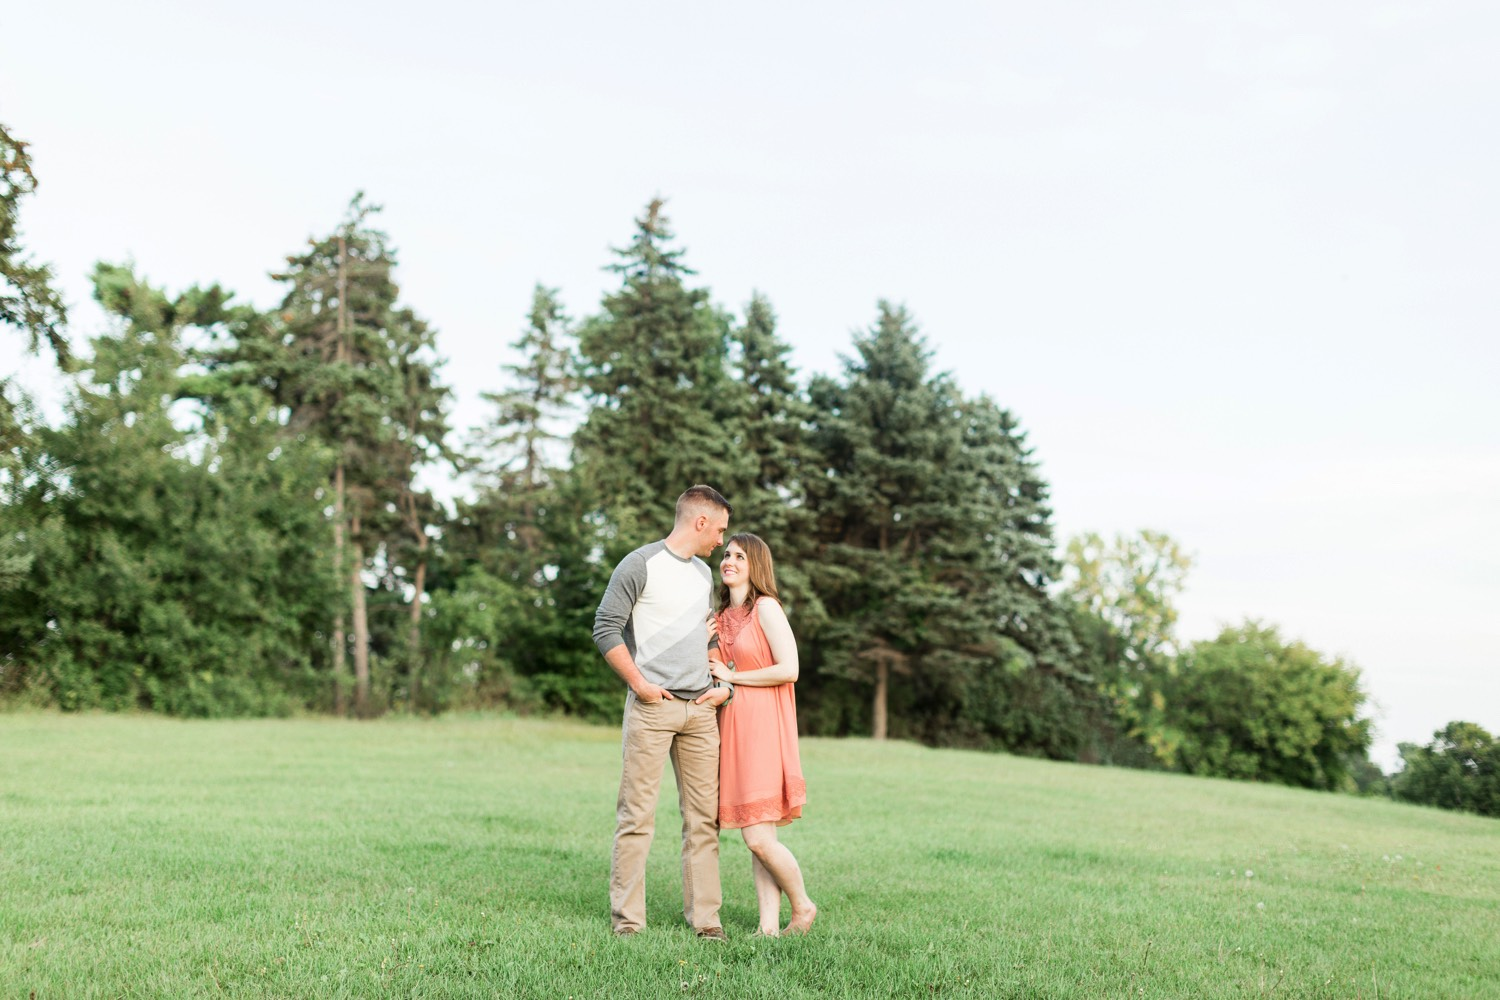 012_Abigail Berge Photography-Engagement-77.jpg